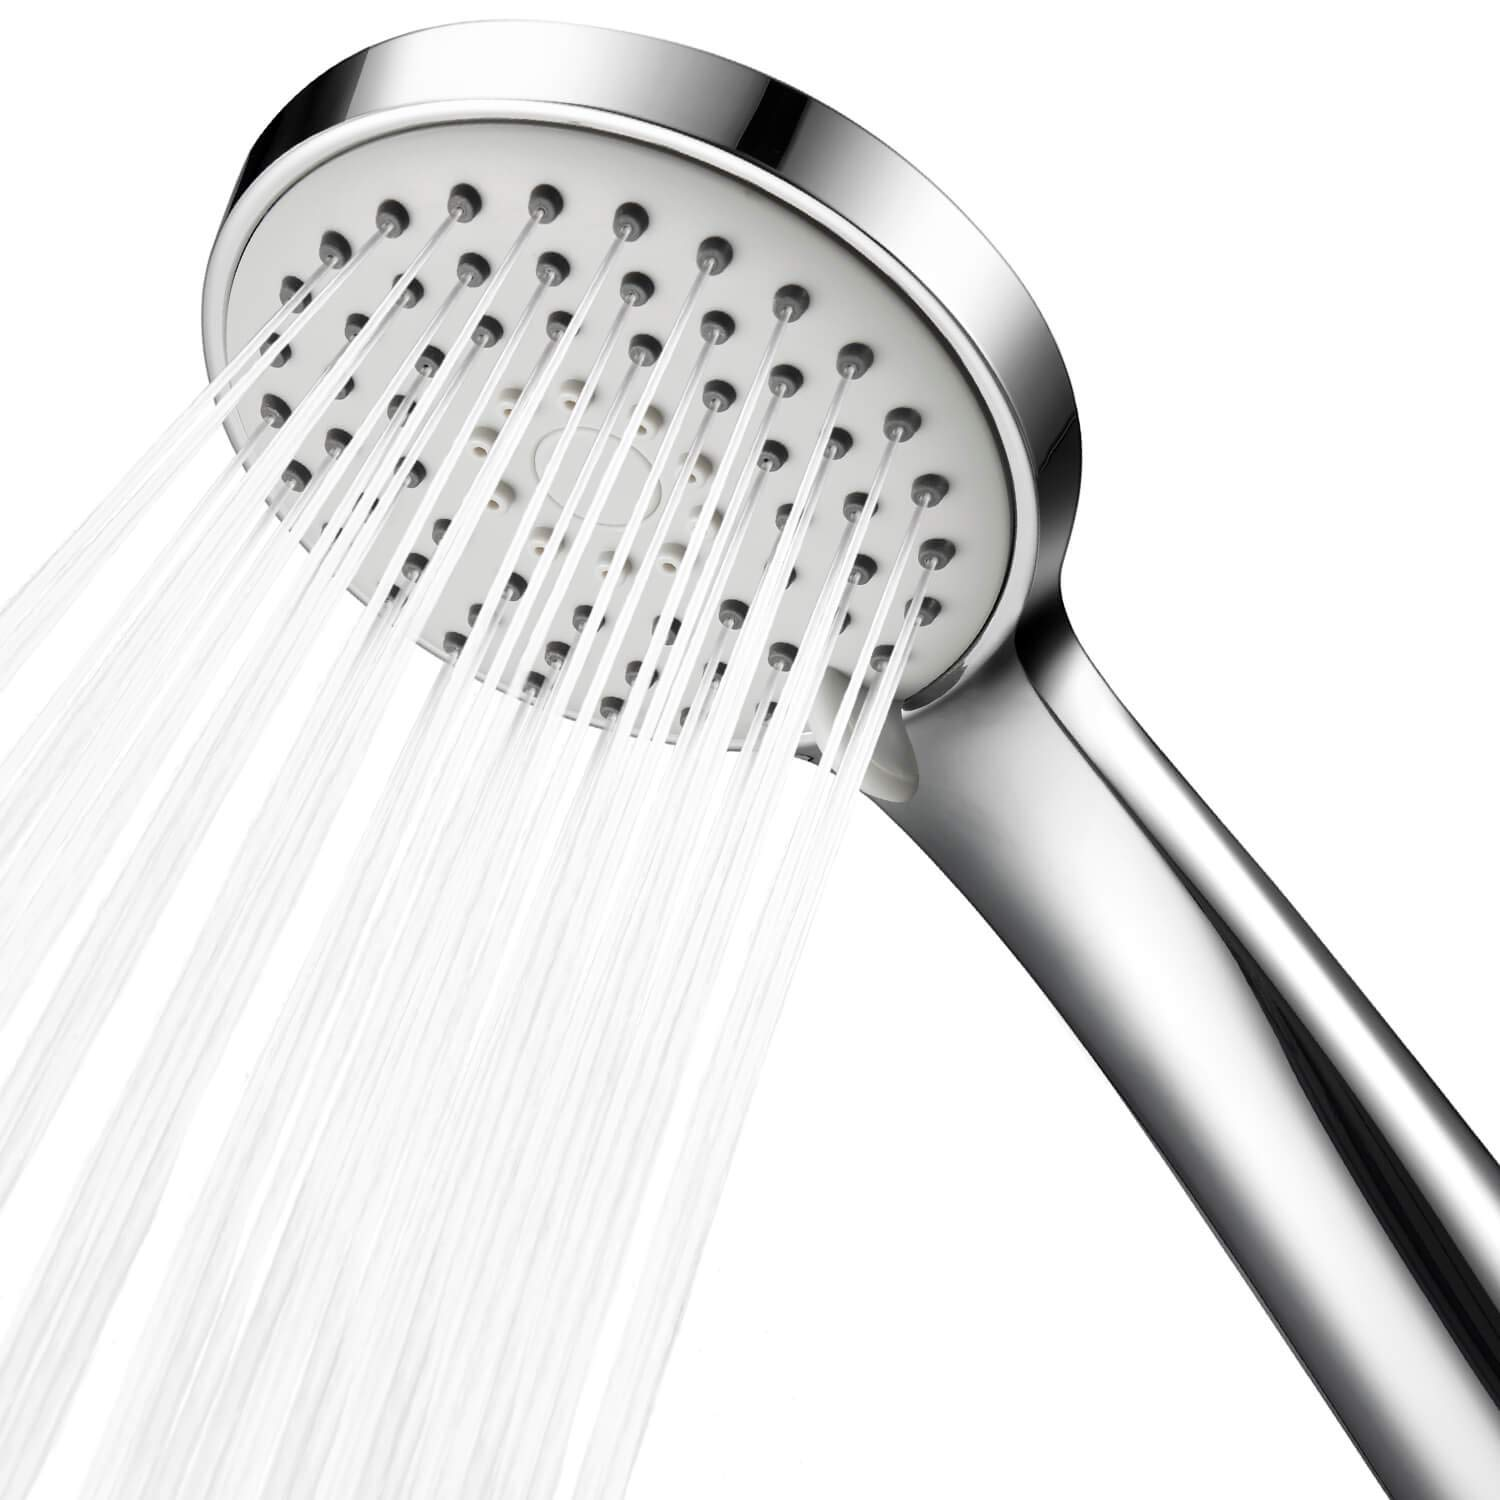 Samodra High Pressure Handheld Shower Head Powerful Spray Showerhead with Hose for Low Flow Showers, Multi-functions, Removable Water Restrictor, Adjustable Wall Mount Bracket, 4 Inch, Chrome